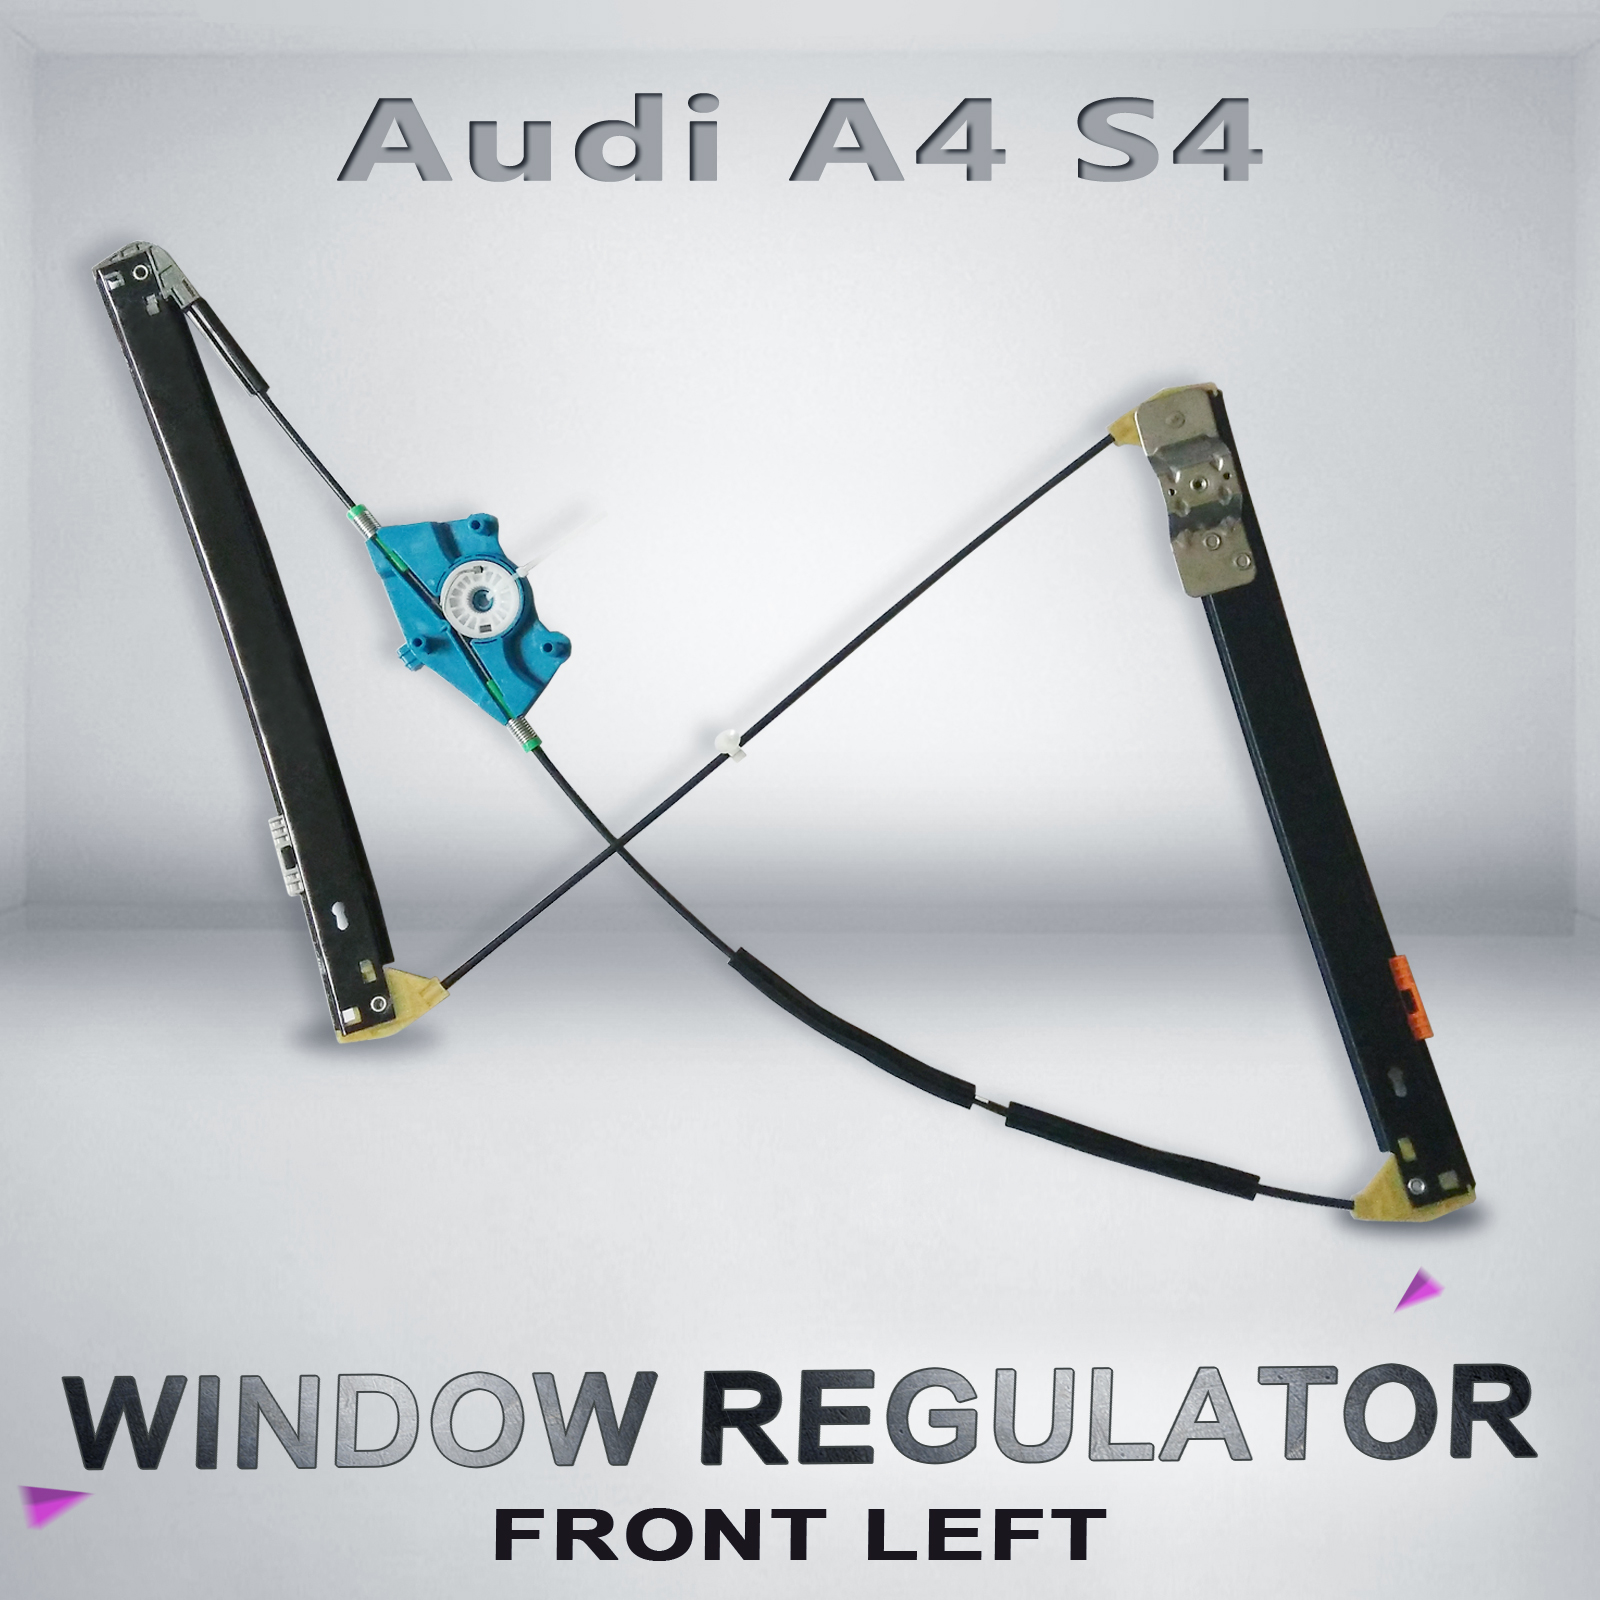 Window regulator audi a4 s4 8e b6 02 08 front left for 2003 audi a4 window regulator replacement